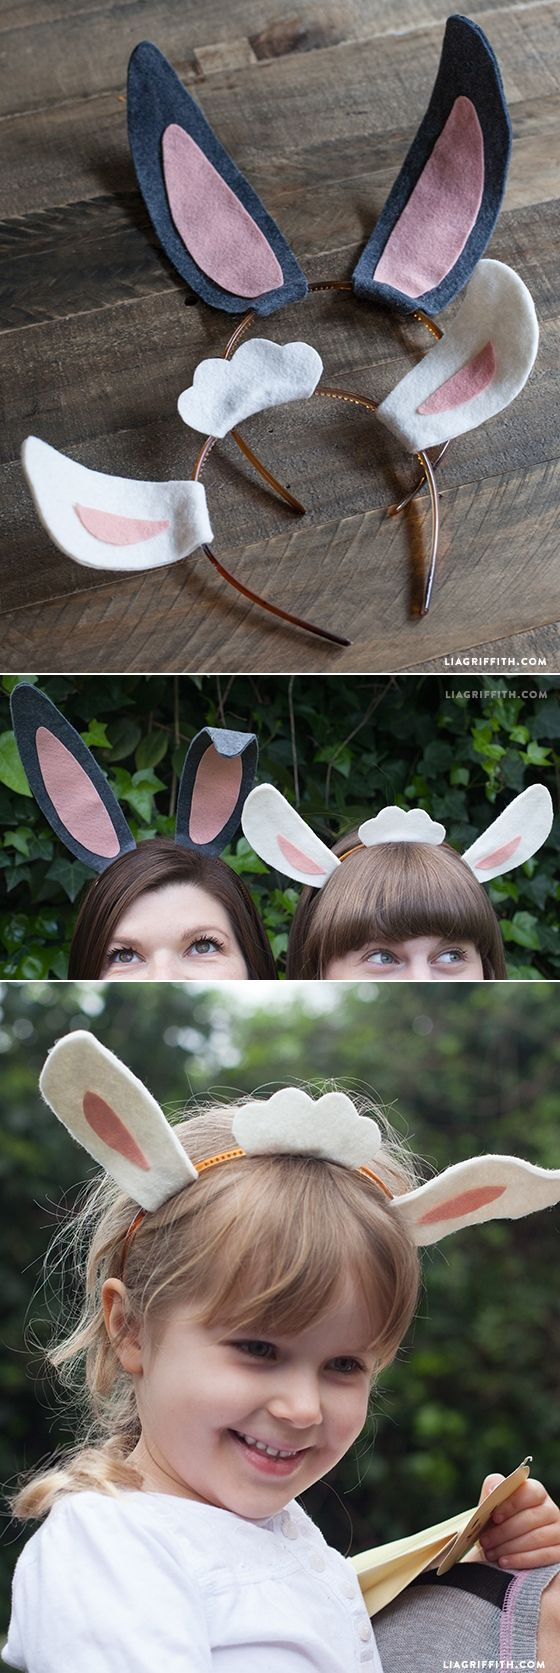 #DIY #Easter #BunnyEars at www.LiaGriffith.com. Nx